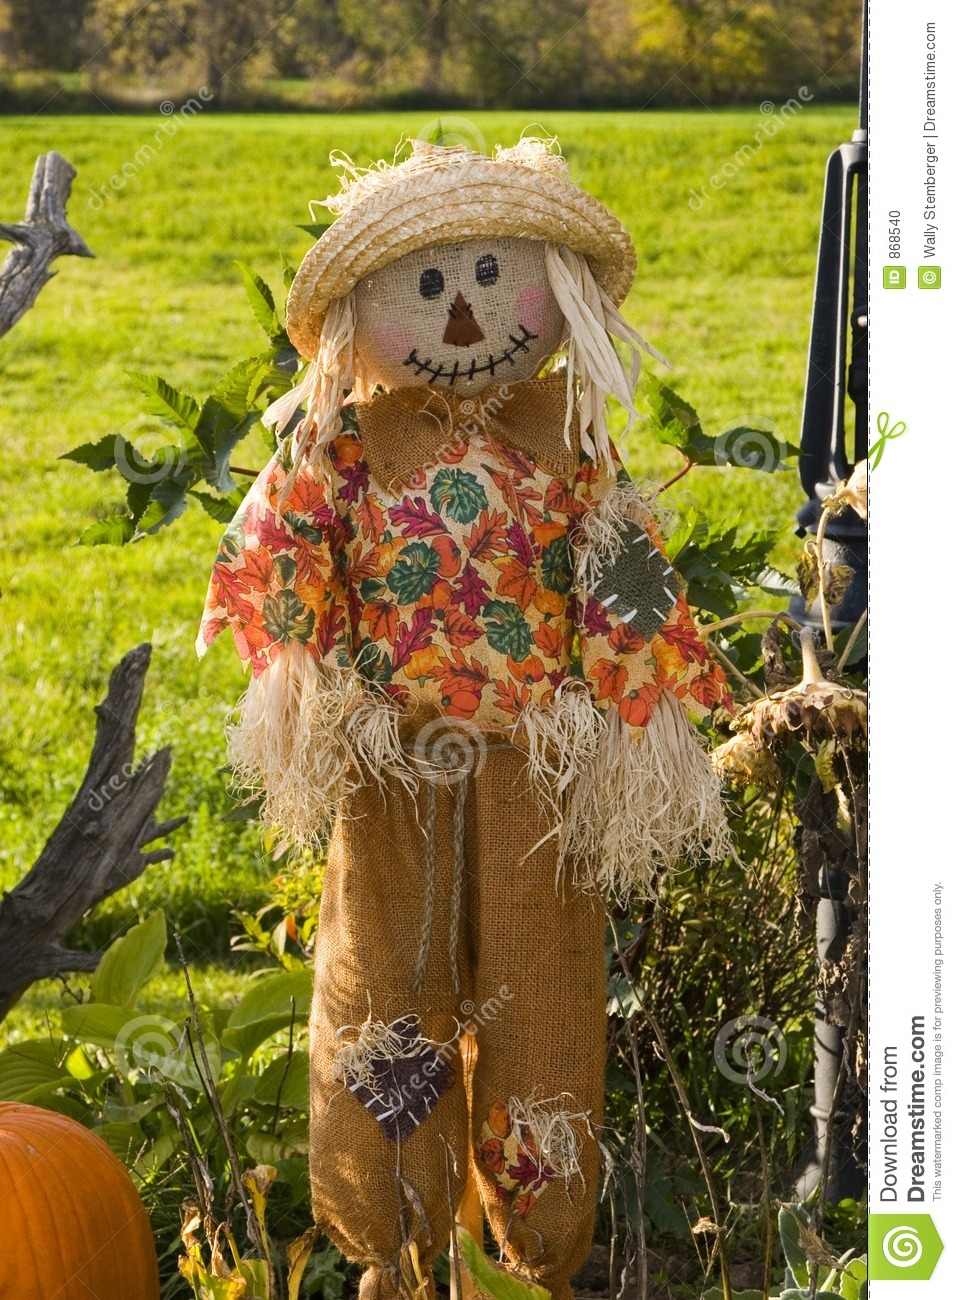 Halloween Scarecrow Stock Photo - Image: 868540